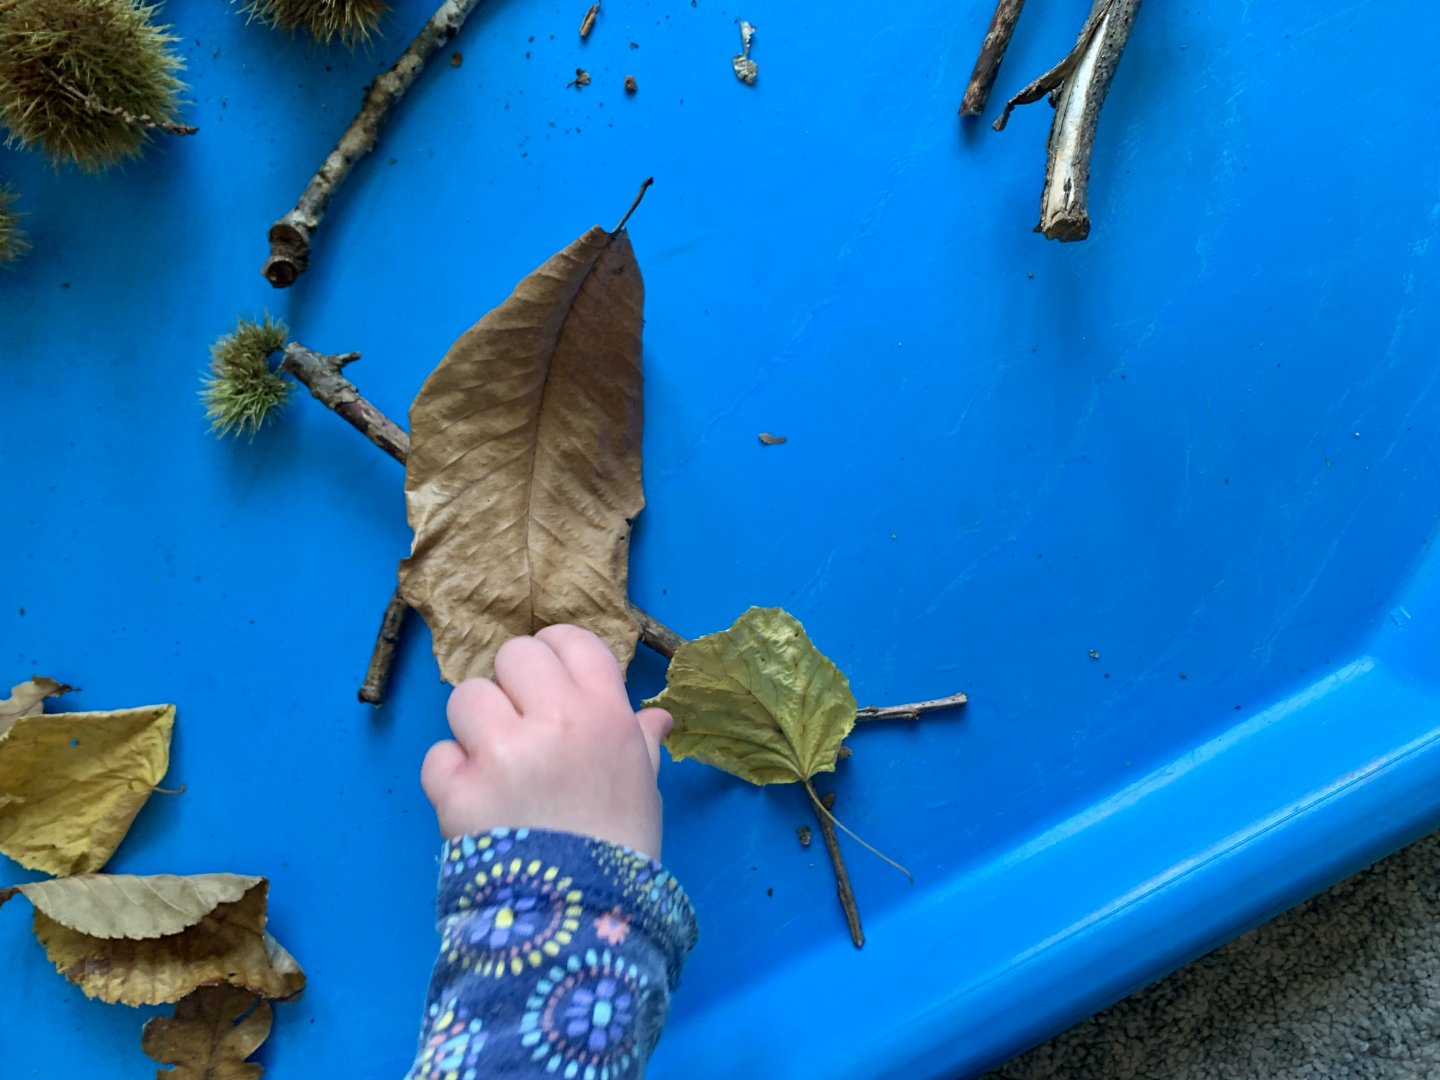 M places a leave onto some sticks arranged as a stick man with a sweet chestnut case hat.